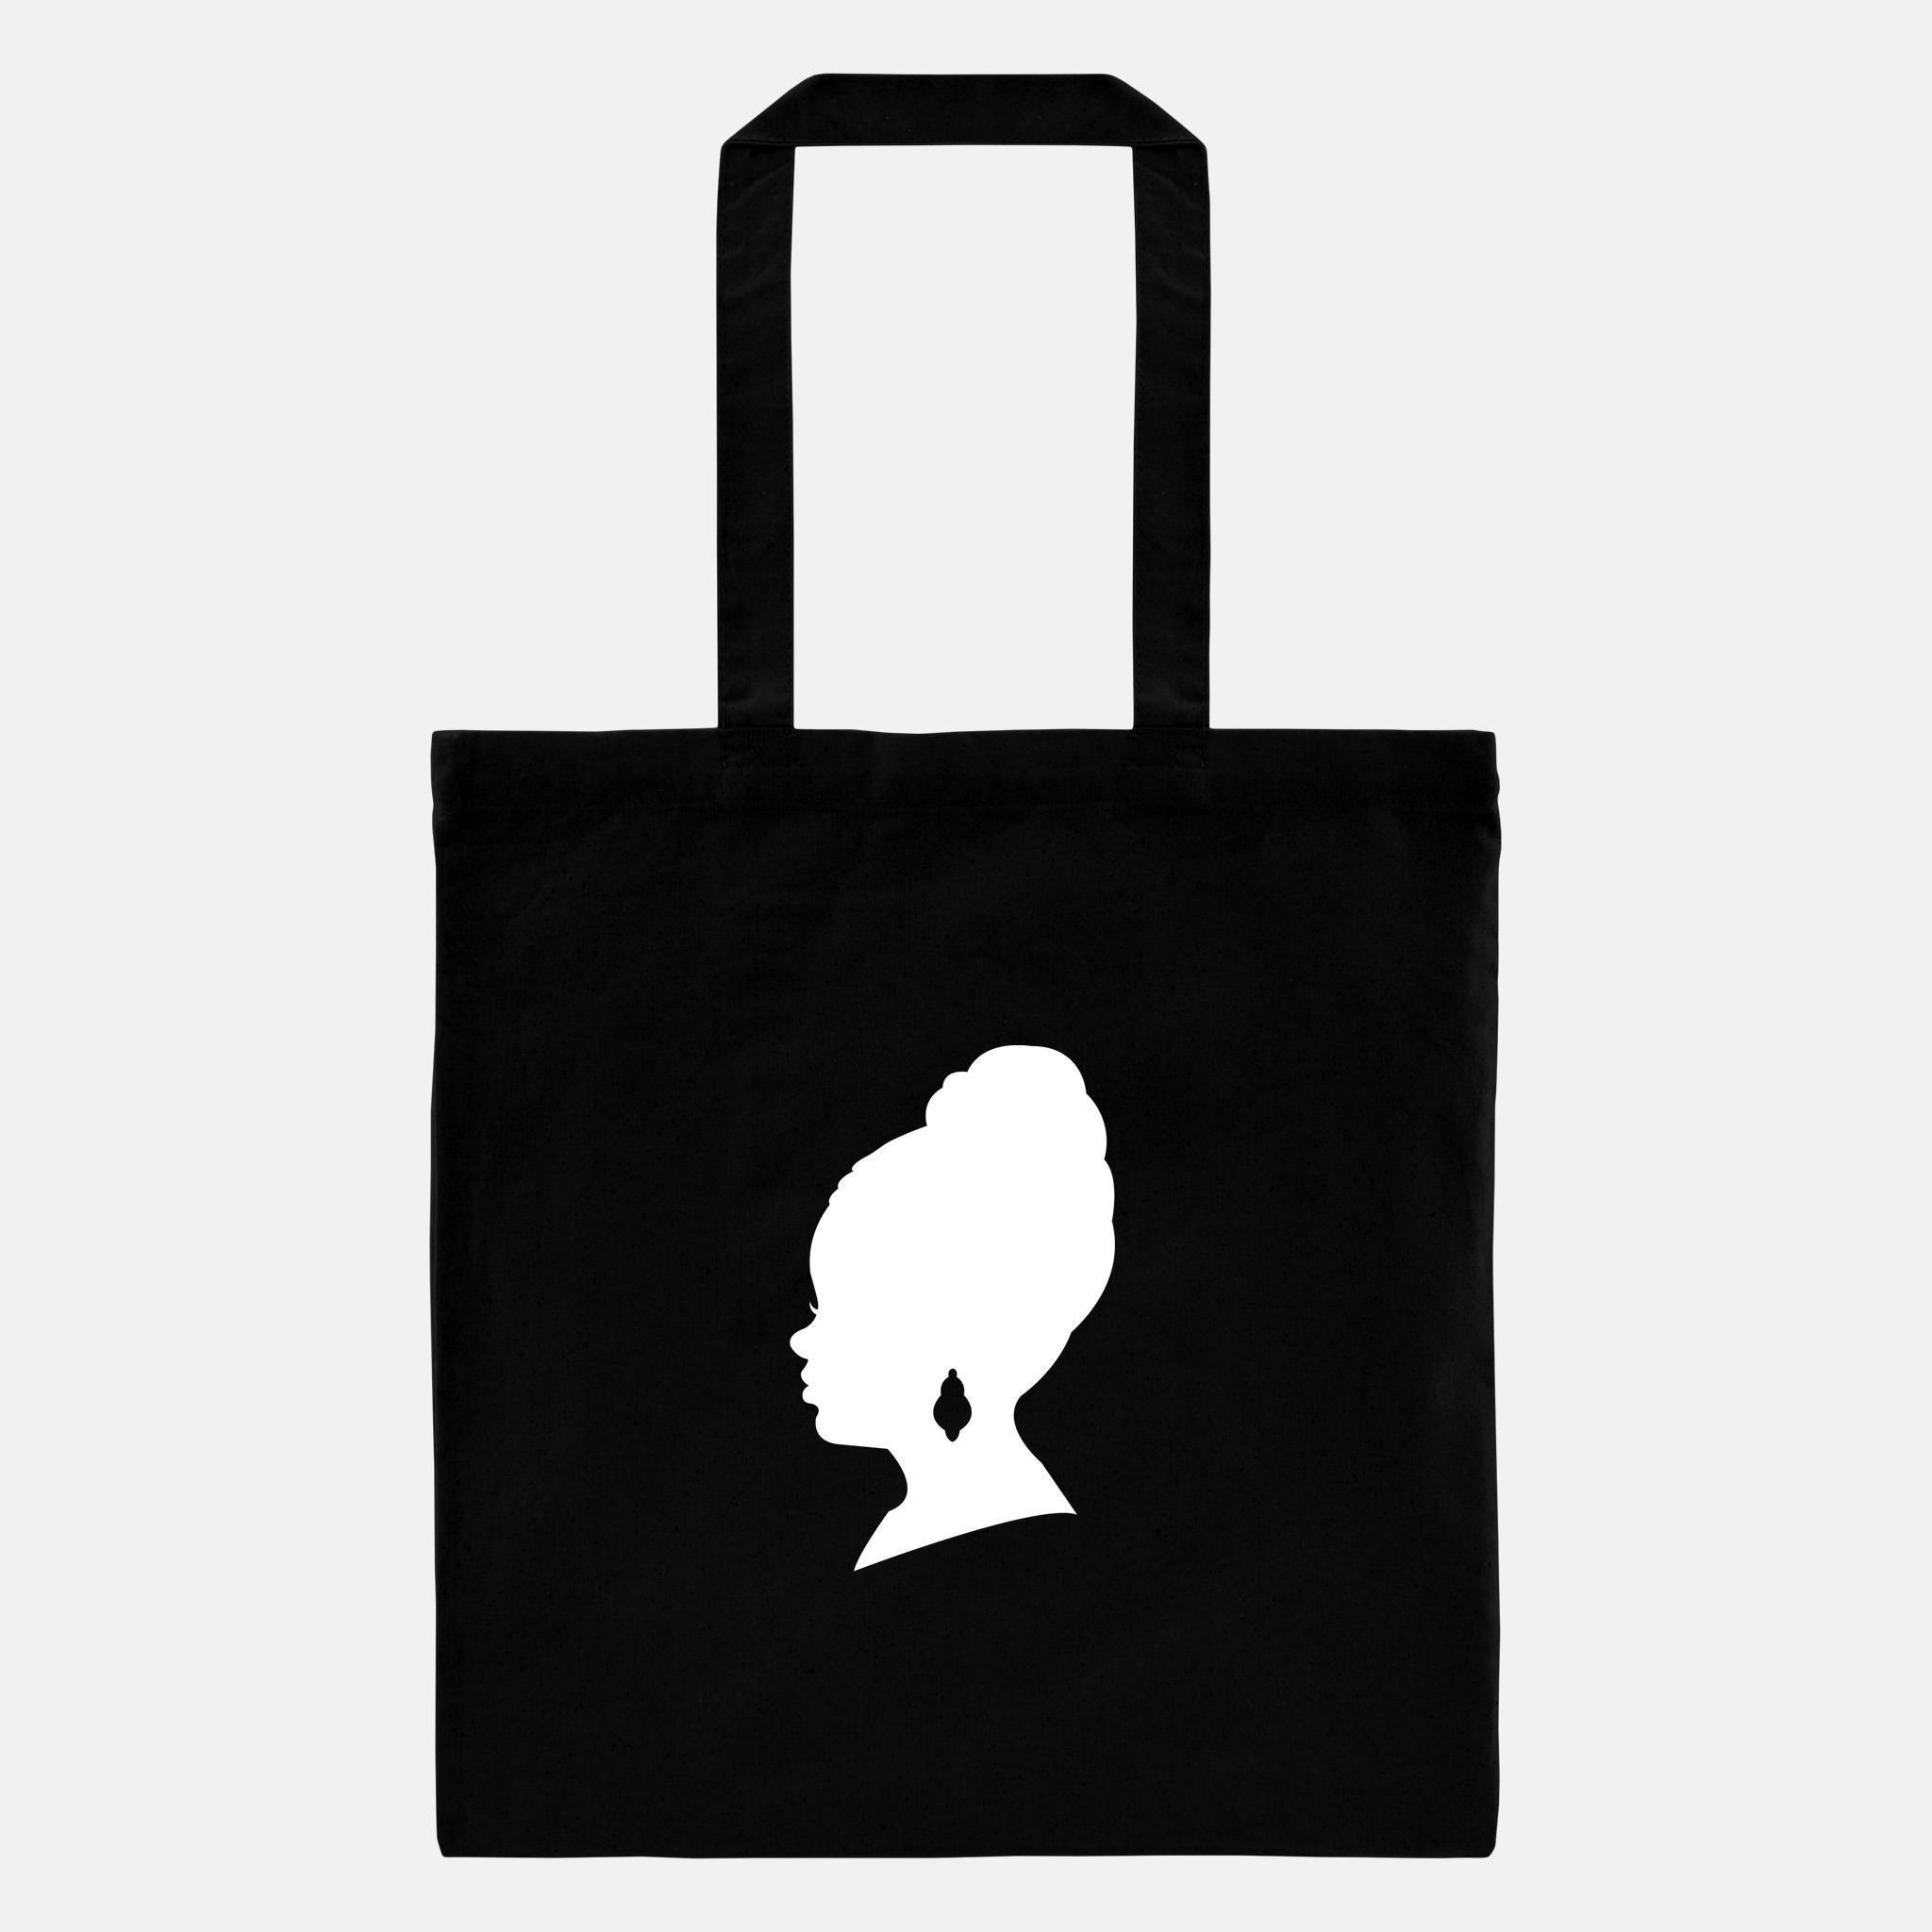 2048x2048 Personalized Name Tote, African American Silhouette, Personalized